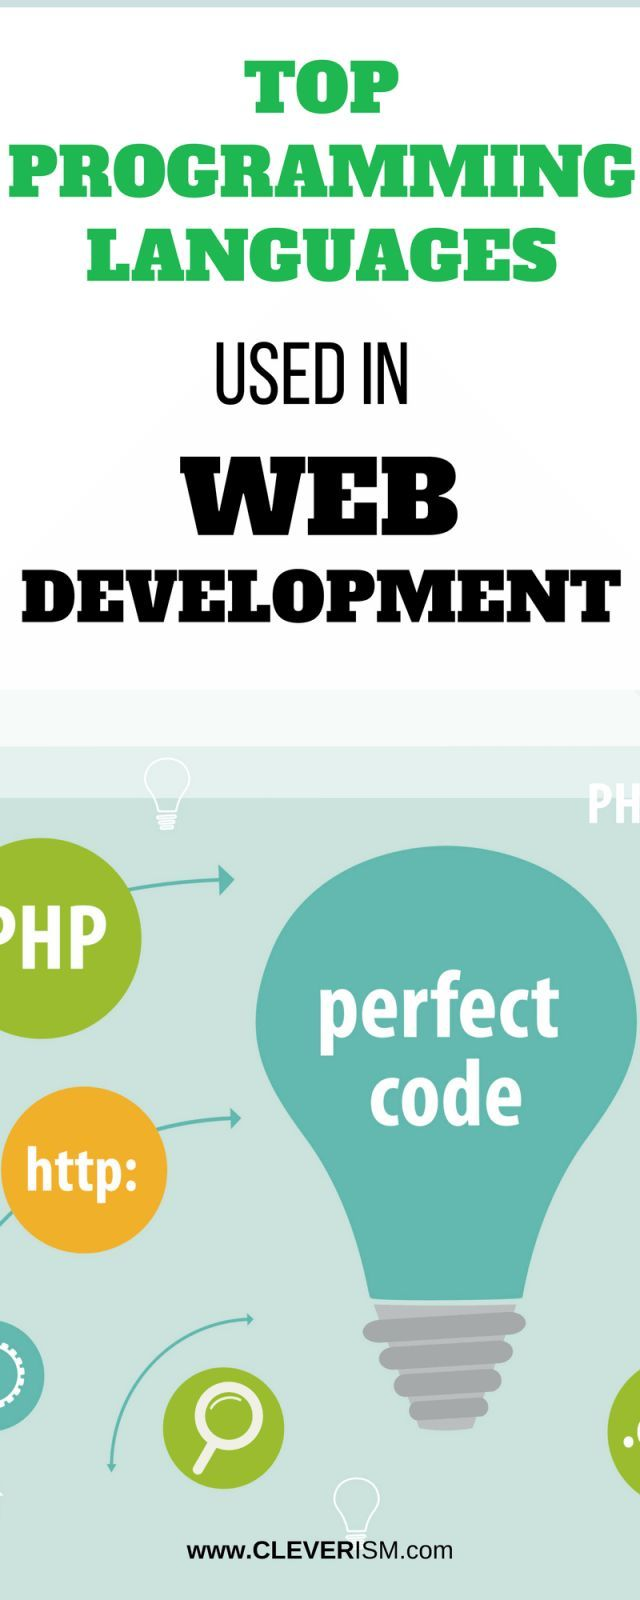 Top Programming Languages Used In Web Development Top Programming Languages Programming Languages Web Development